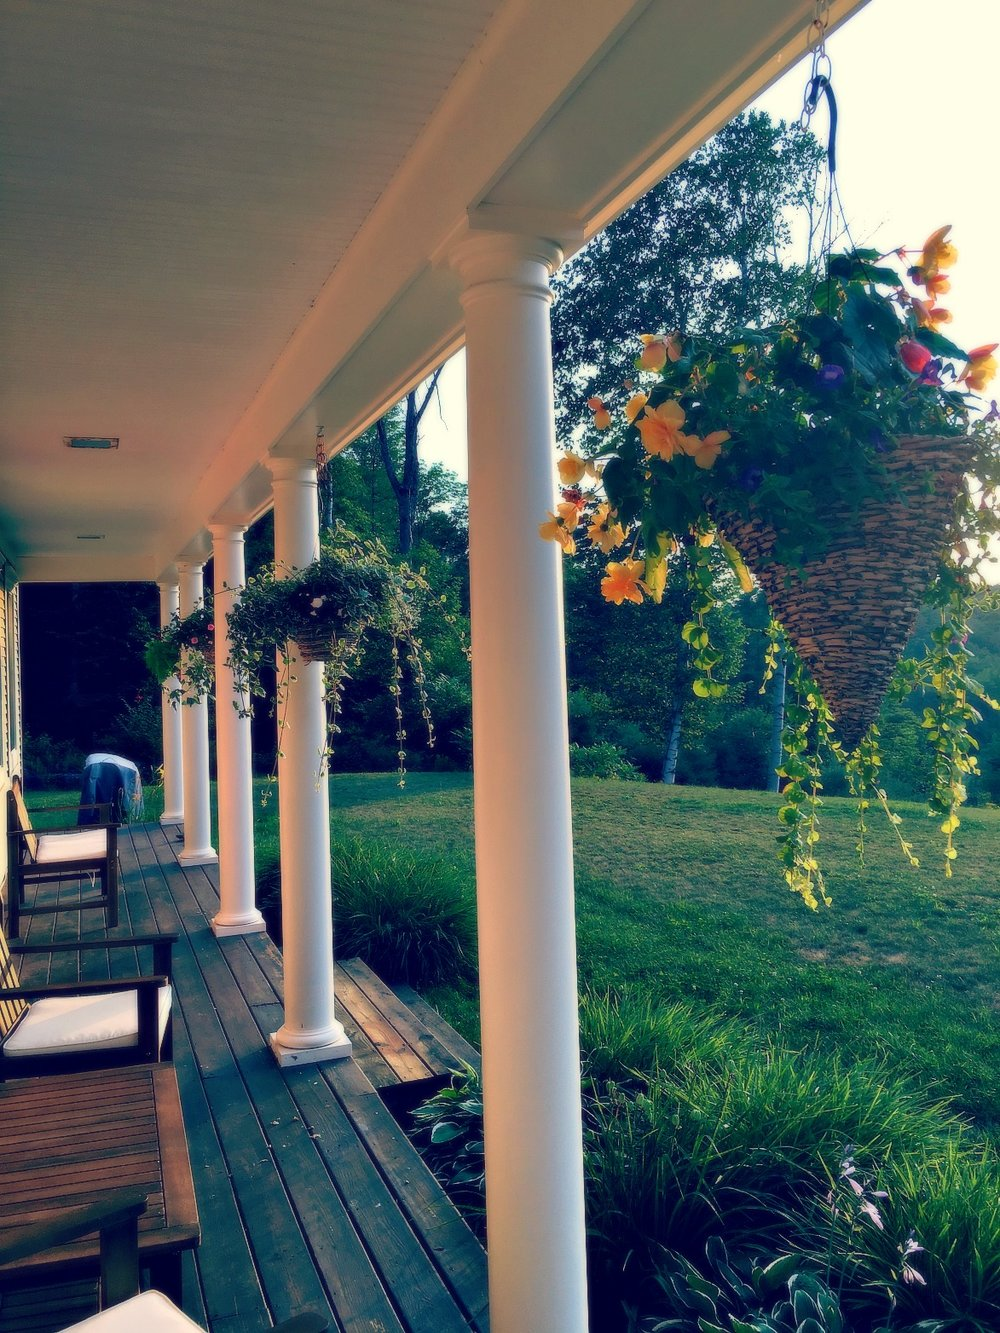 Our front porch at sunset.